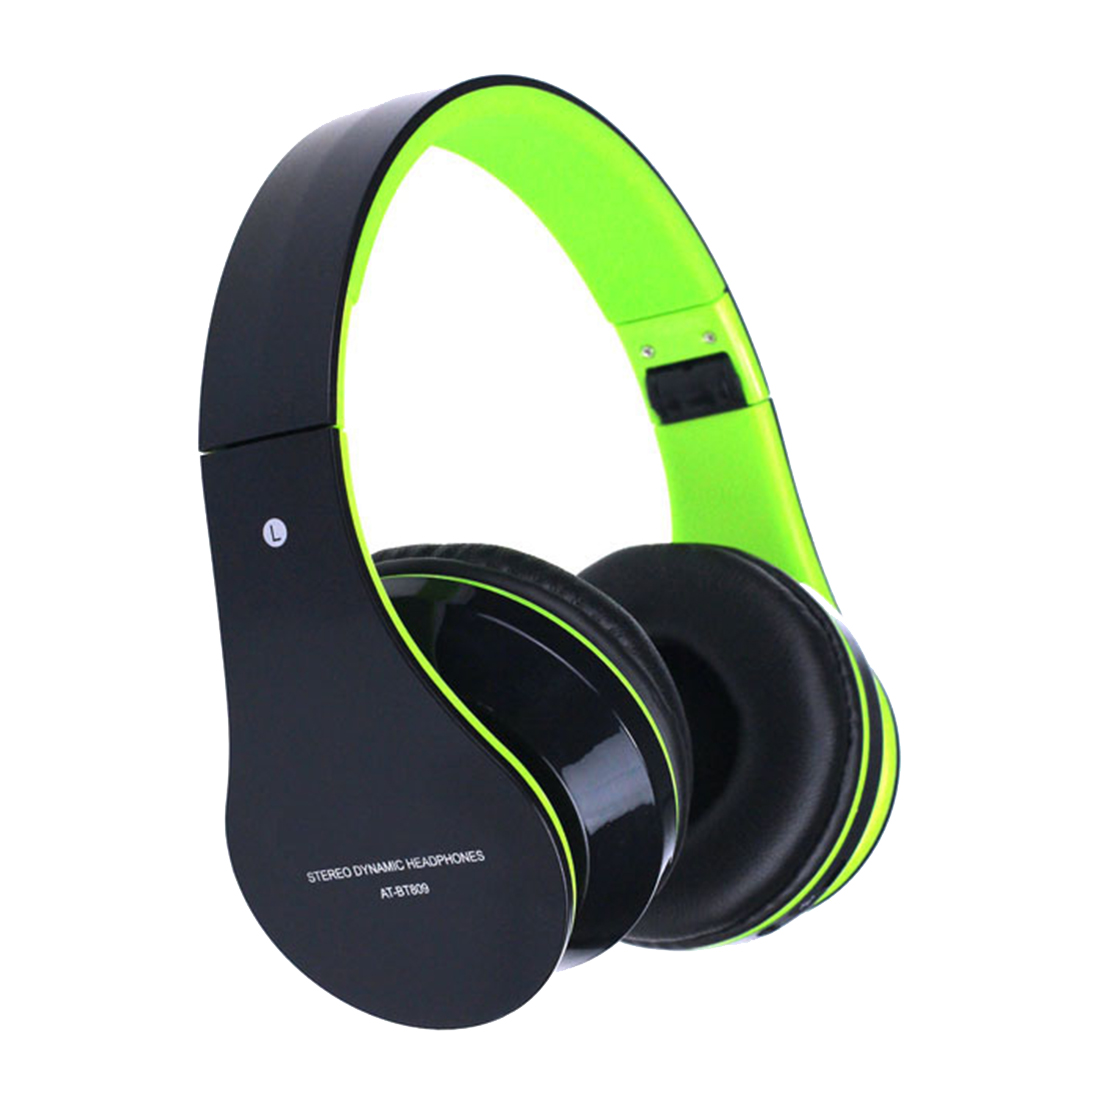 Foldable Wireless Bluetooth Stereo Headset Headphones Mic For iPhone Color:Green kz headset storage box suitable for original headphones as gift to the customer